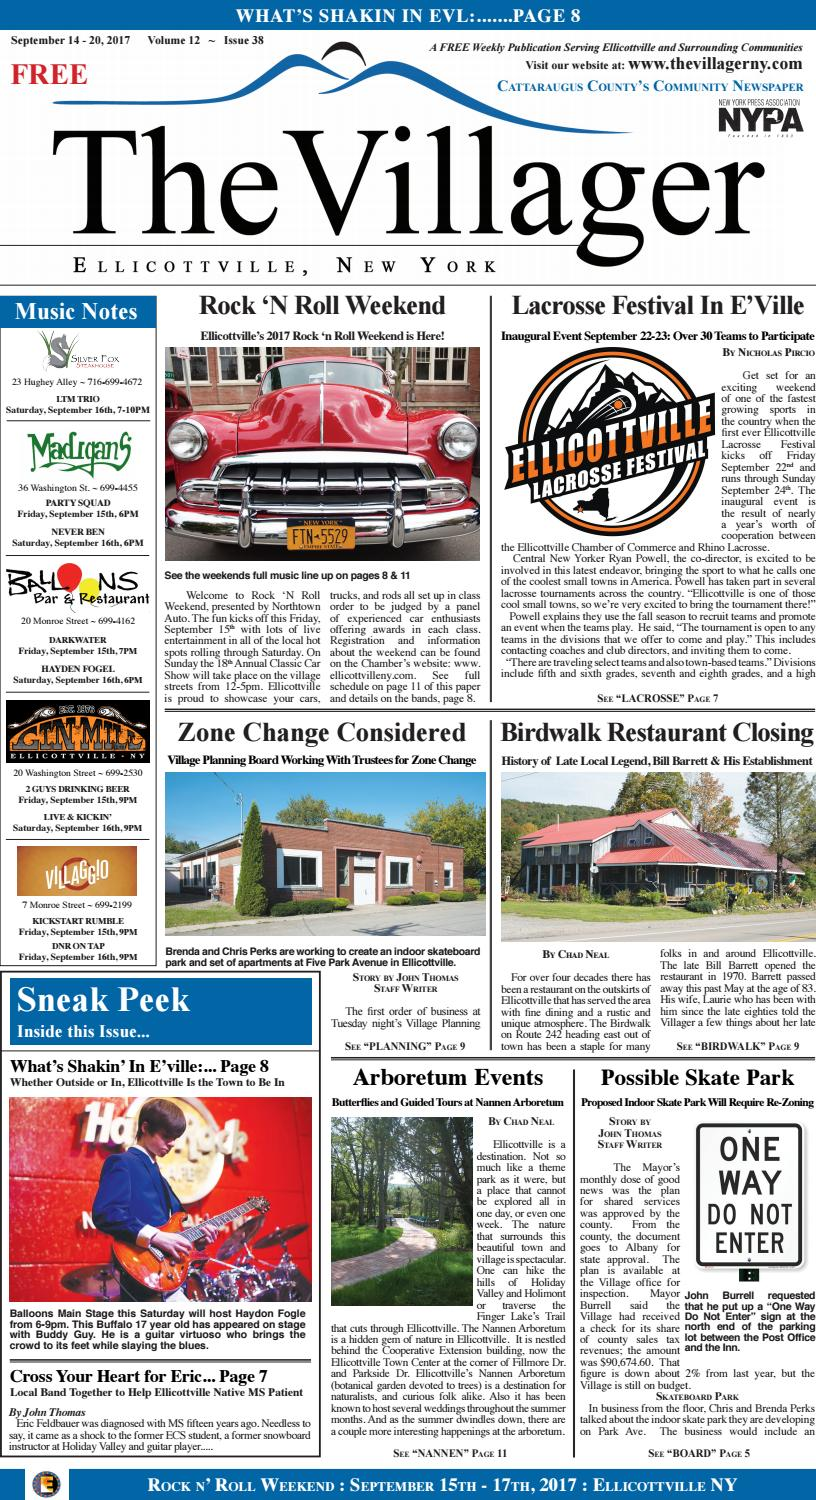 The villager ellicottville september 14 20, 2017 volume 12 ... on 2014 club car parts list, 2014 club car parts diagram, 2014 club car manual, 2014 club car solenoid, 2014 club car transmission,